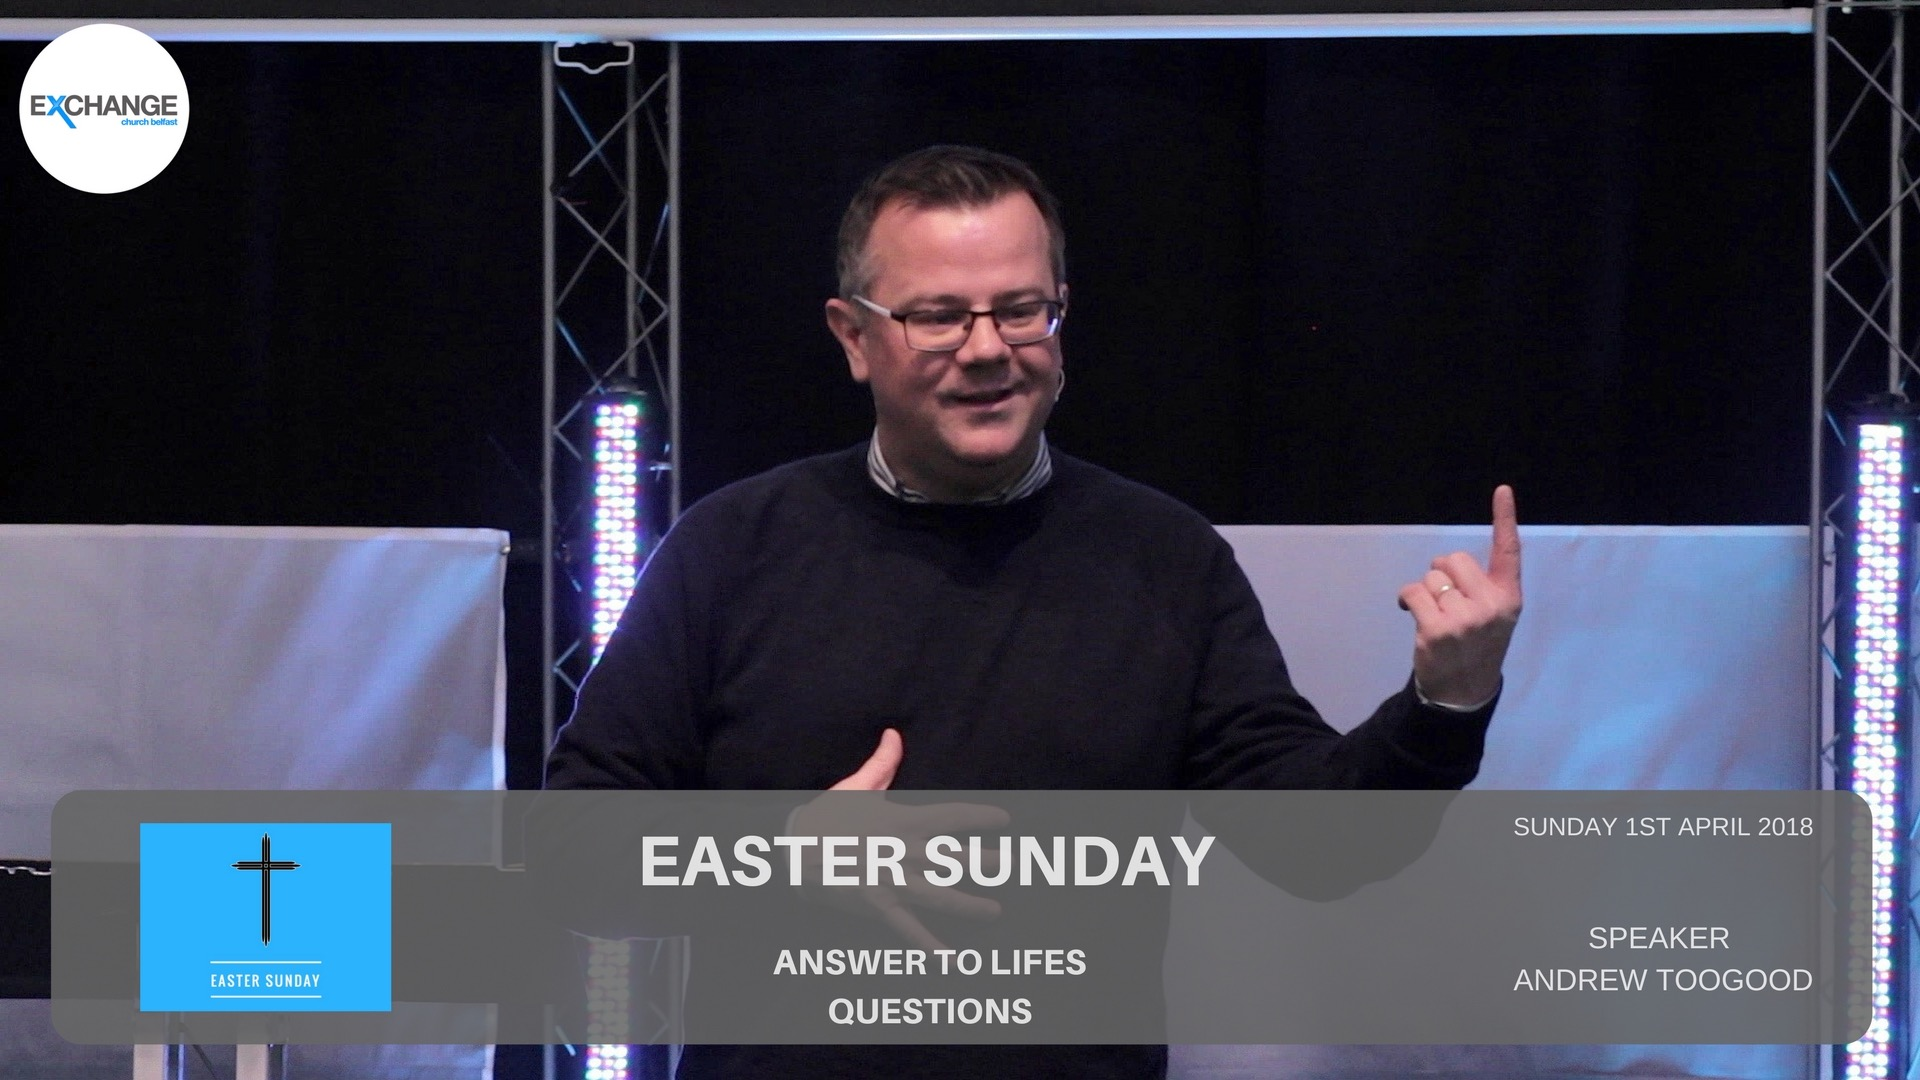 Easter Sunday - Answers to Life's Questions